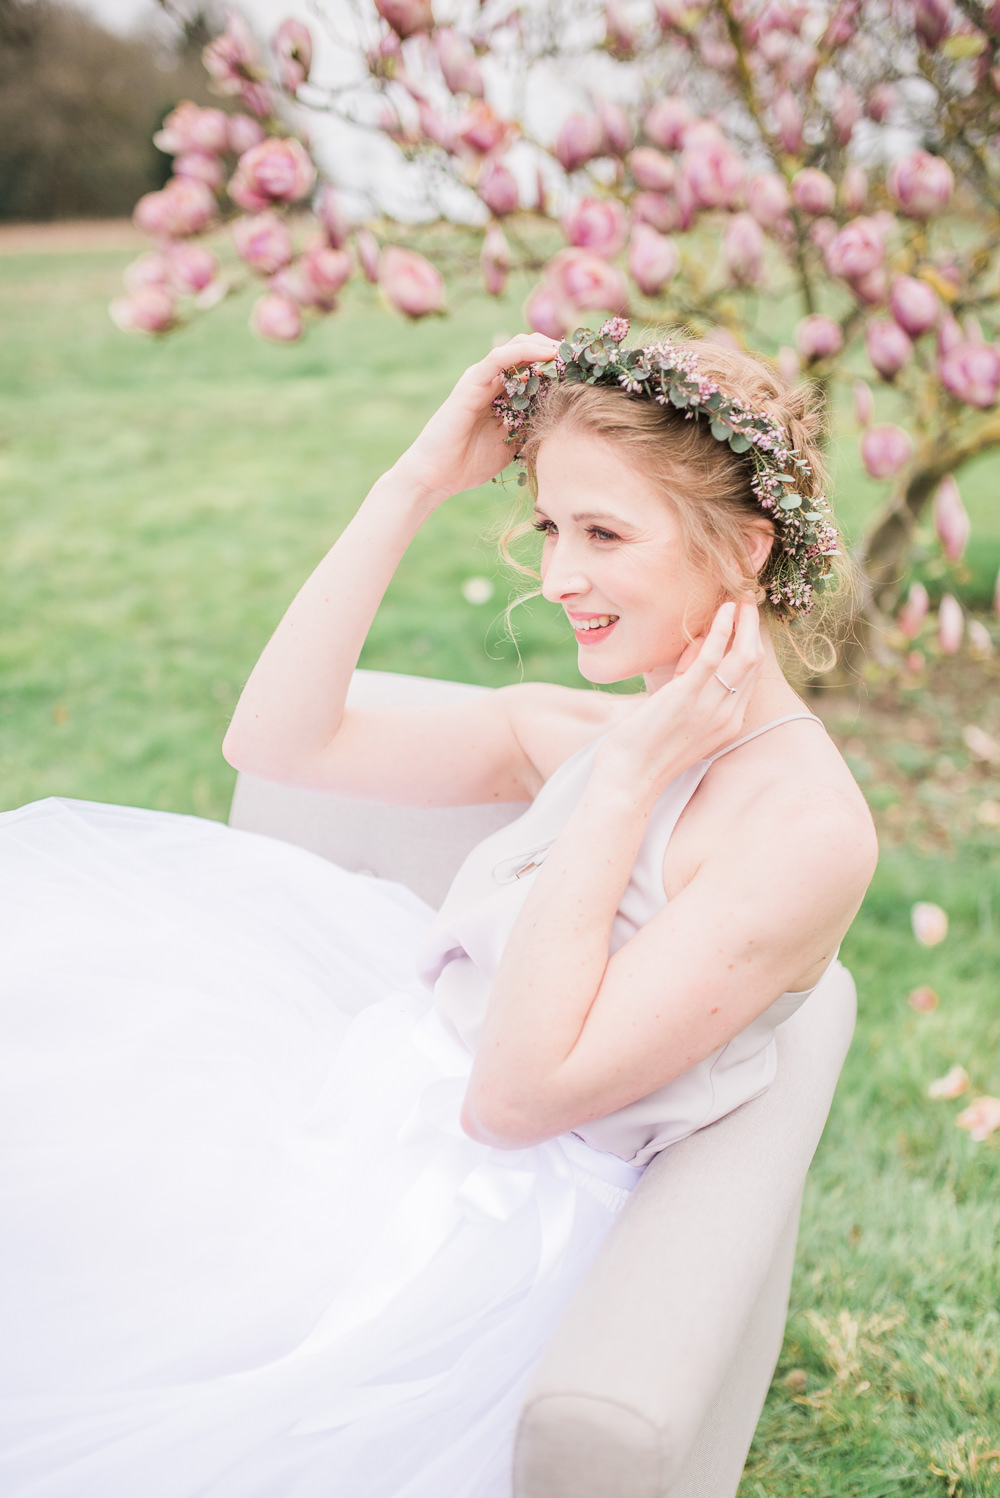 Bridesmaid Bridesmaids Tulle Skirts Tops Bows Pastel Flower Crown Springtime Bridal Shower Ideas Hen Party Laura Jane Photography